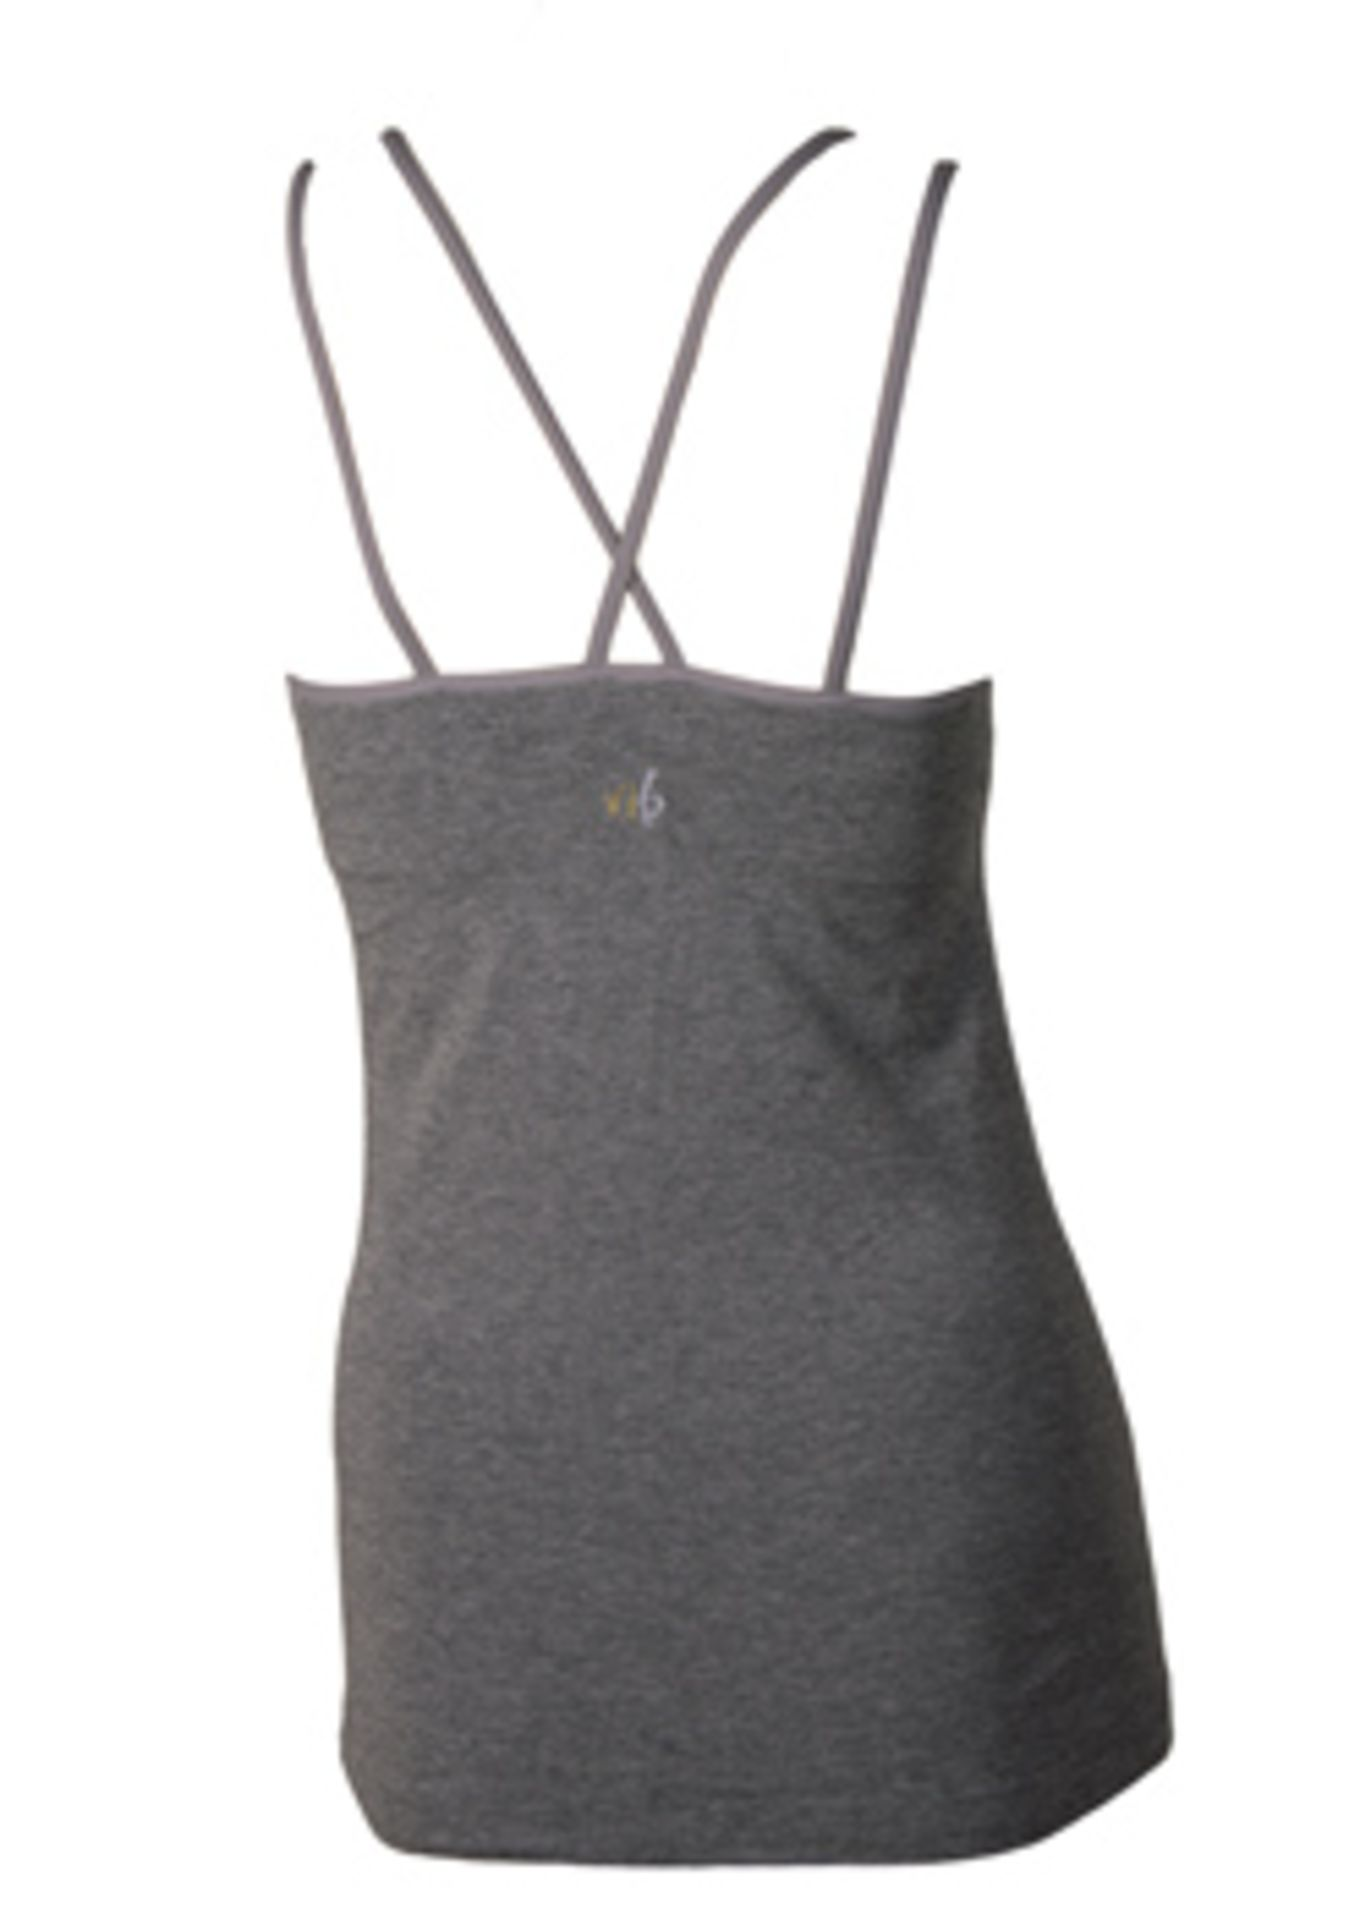 3 x Bamboo Yoga Flow Tops w/ Padded Bra   XS - Image 2 of 3